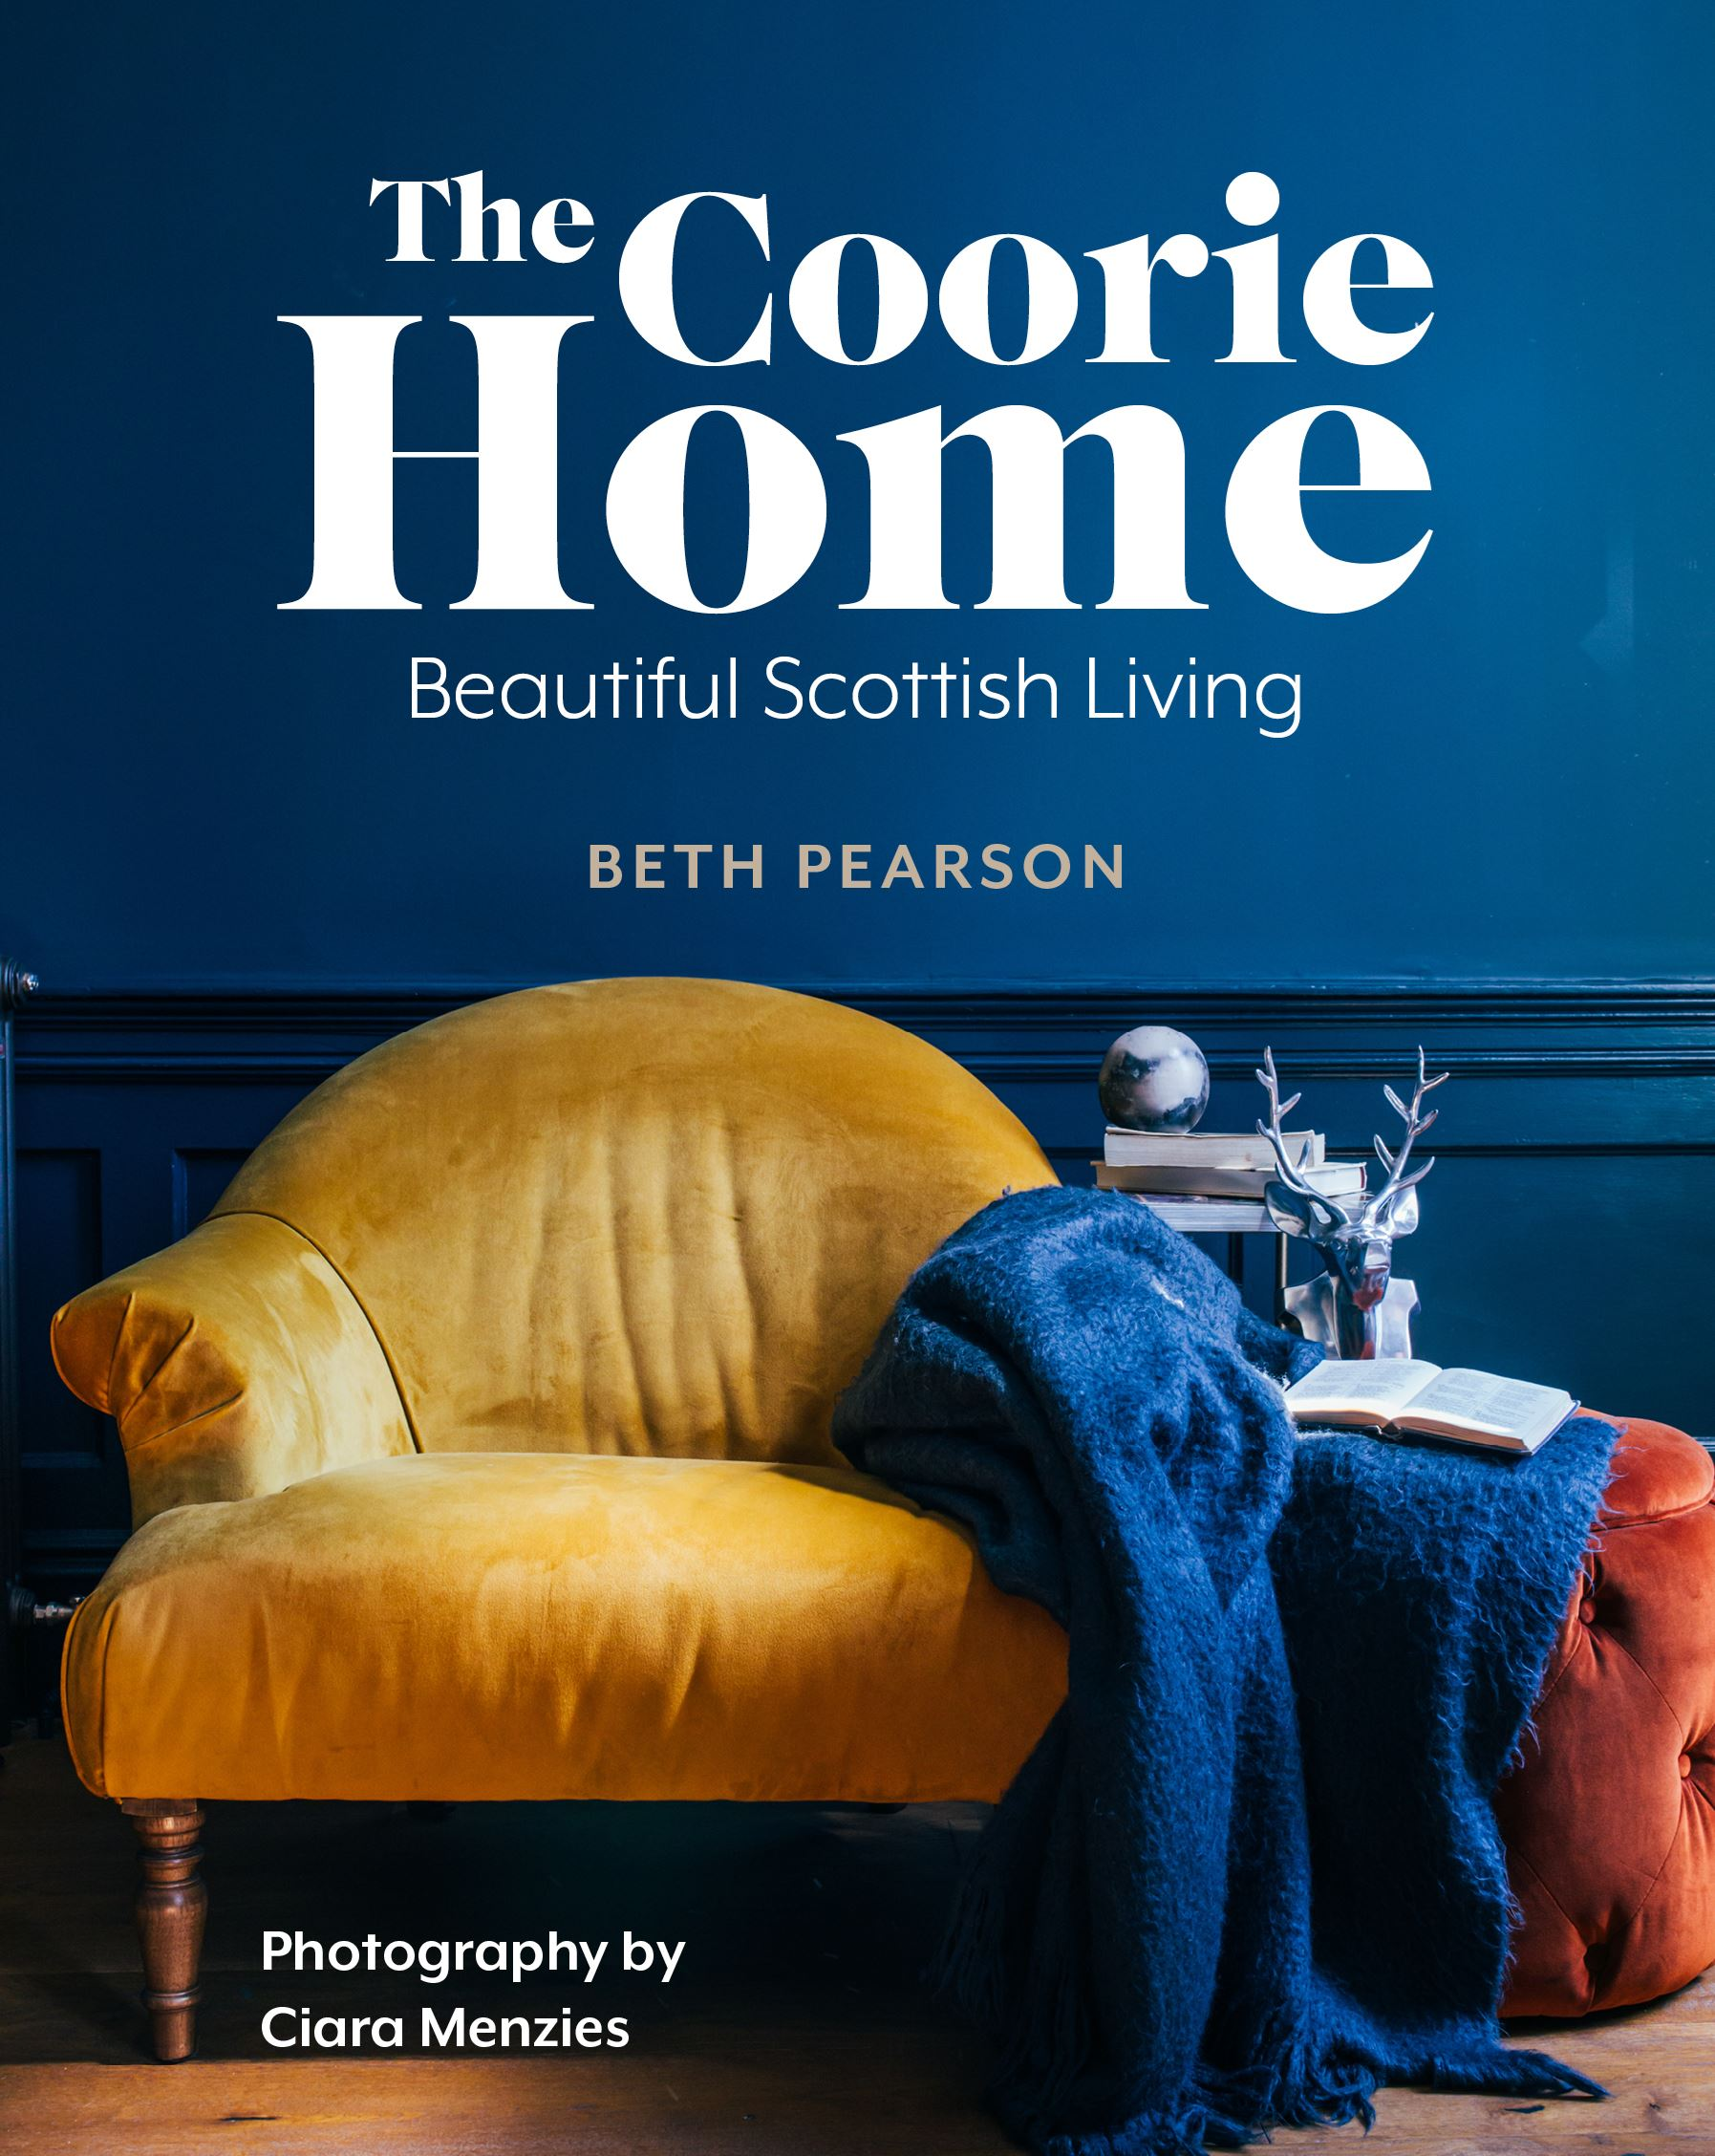 Coorie Home: Beautiful Scottish Living (Book)